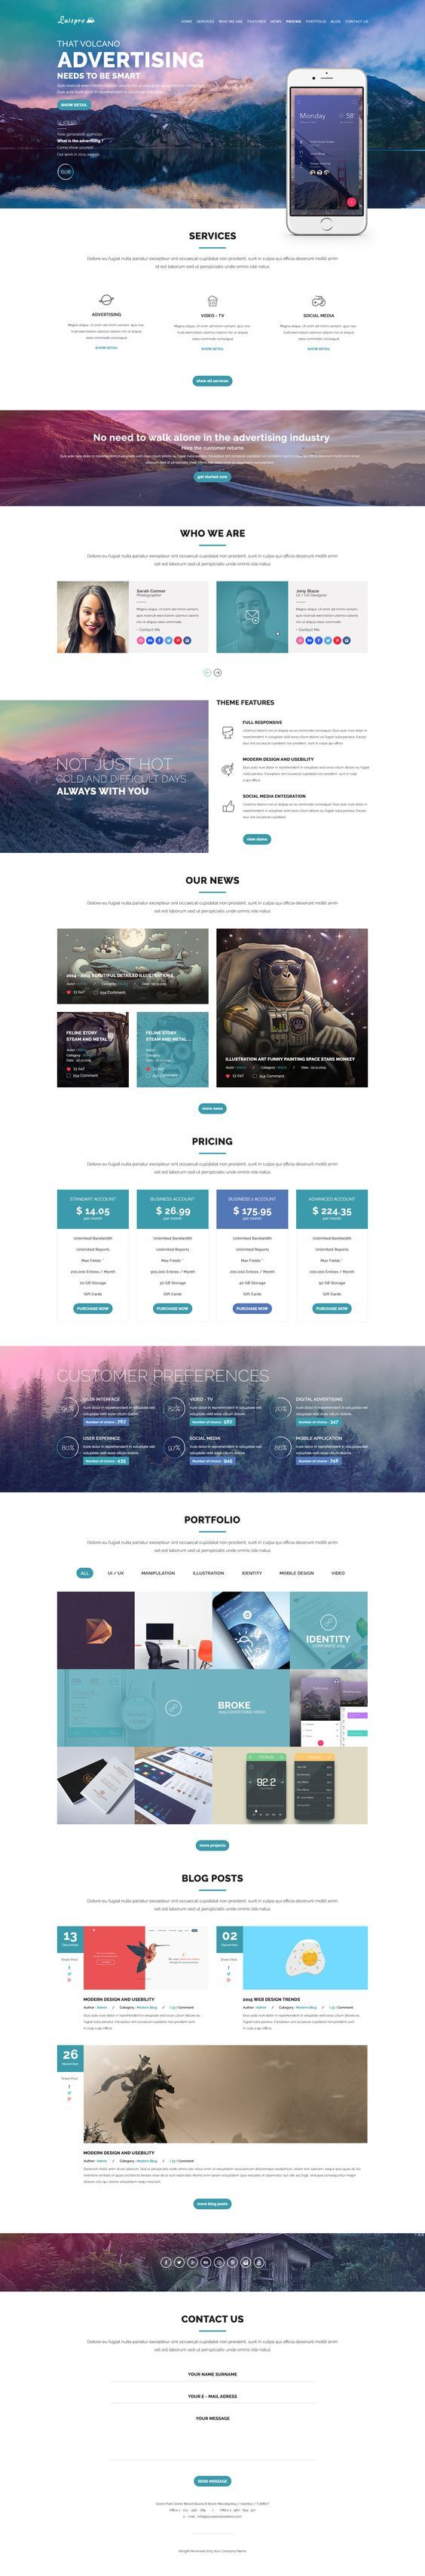 Luispro - Flat & User Friendly Landing Page Design: